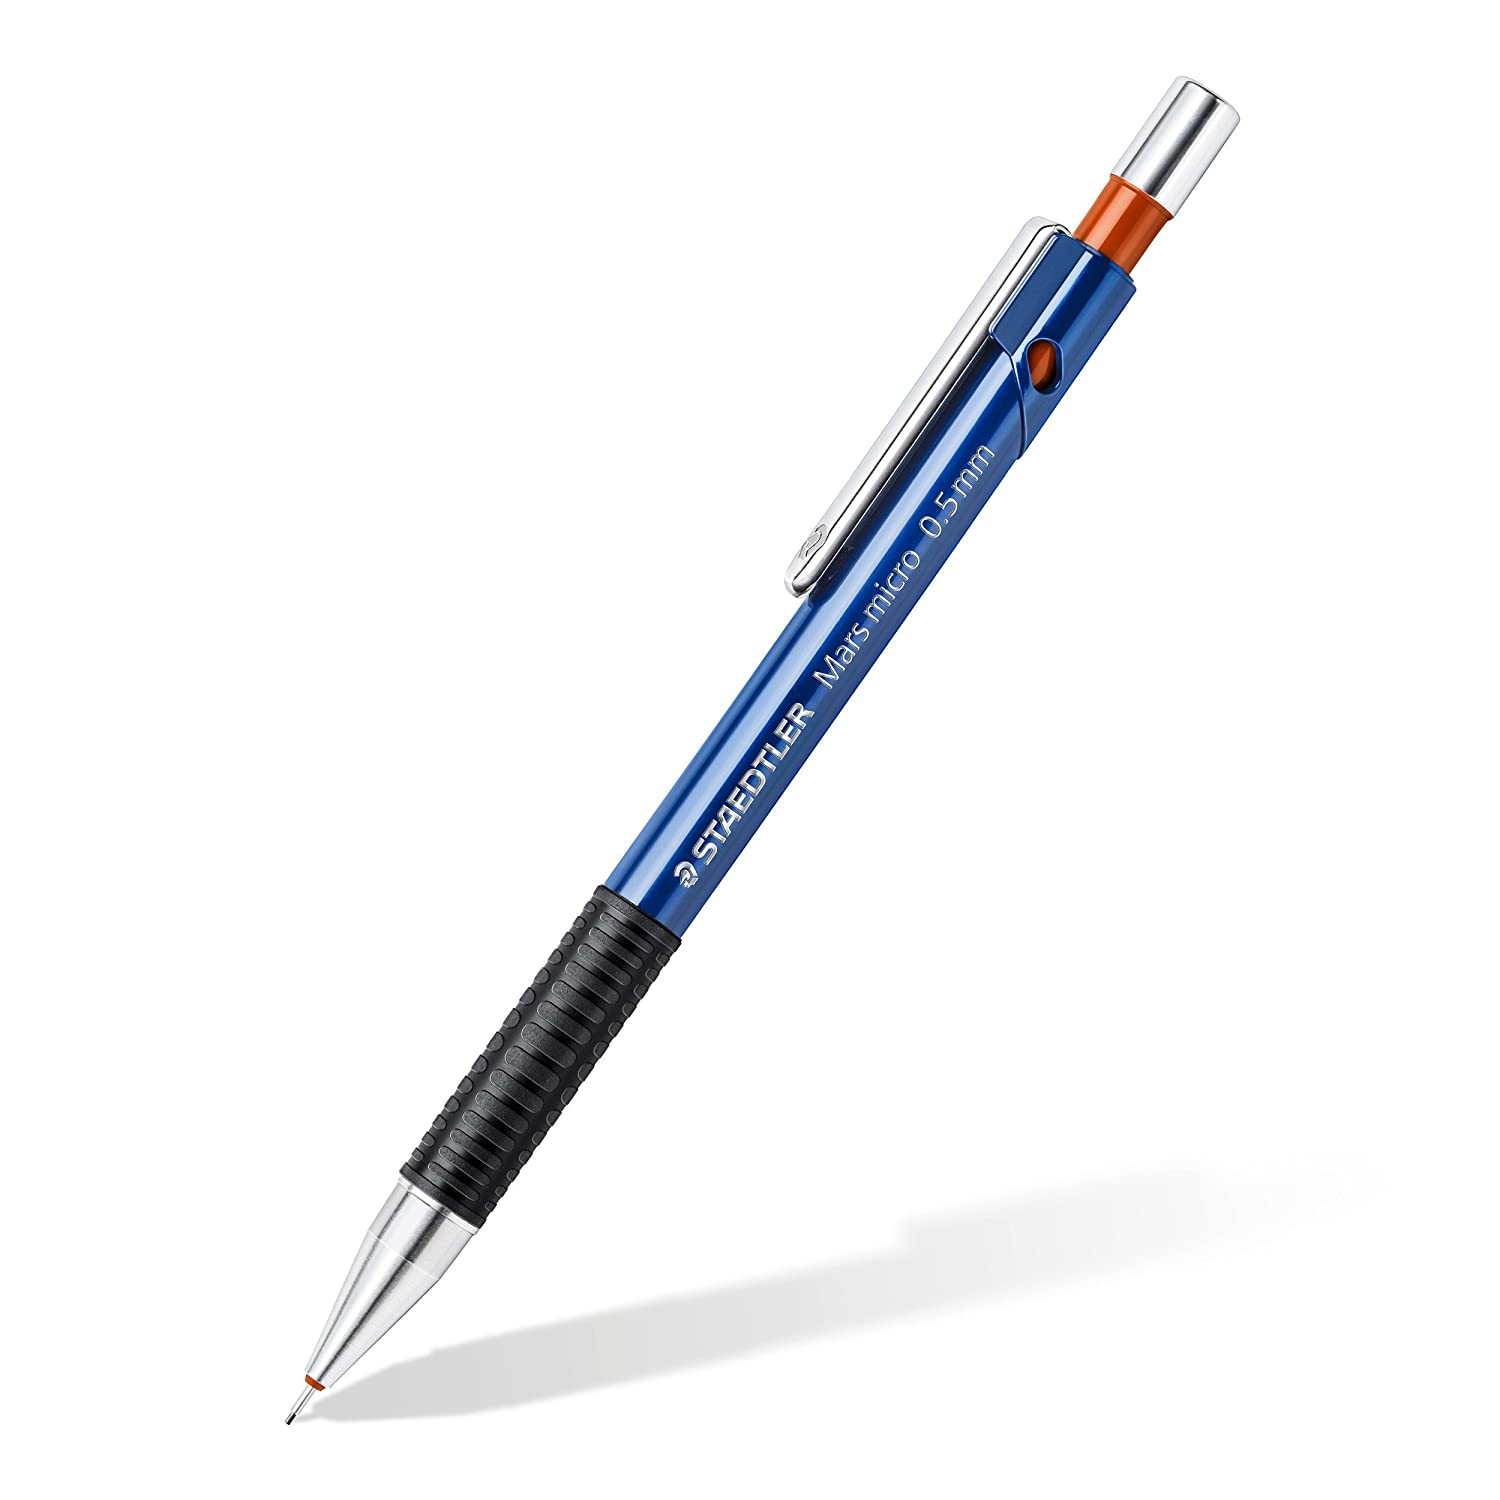 Staedtler Mars Micro 775 0.5 mm Mechanical Pencil